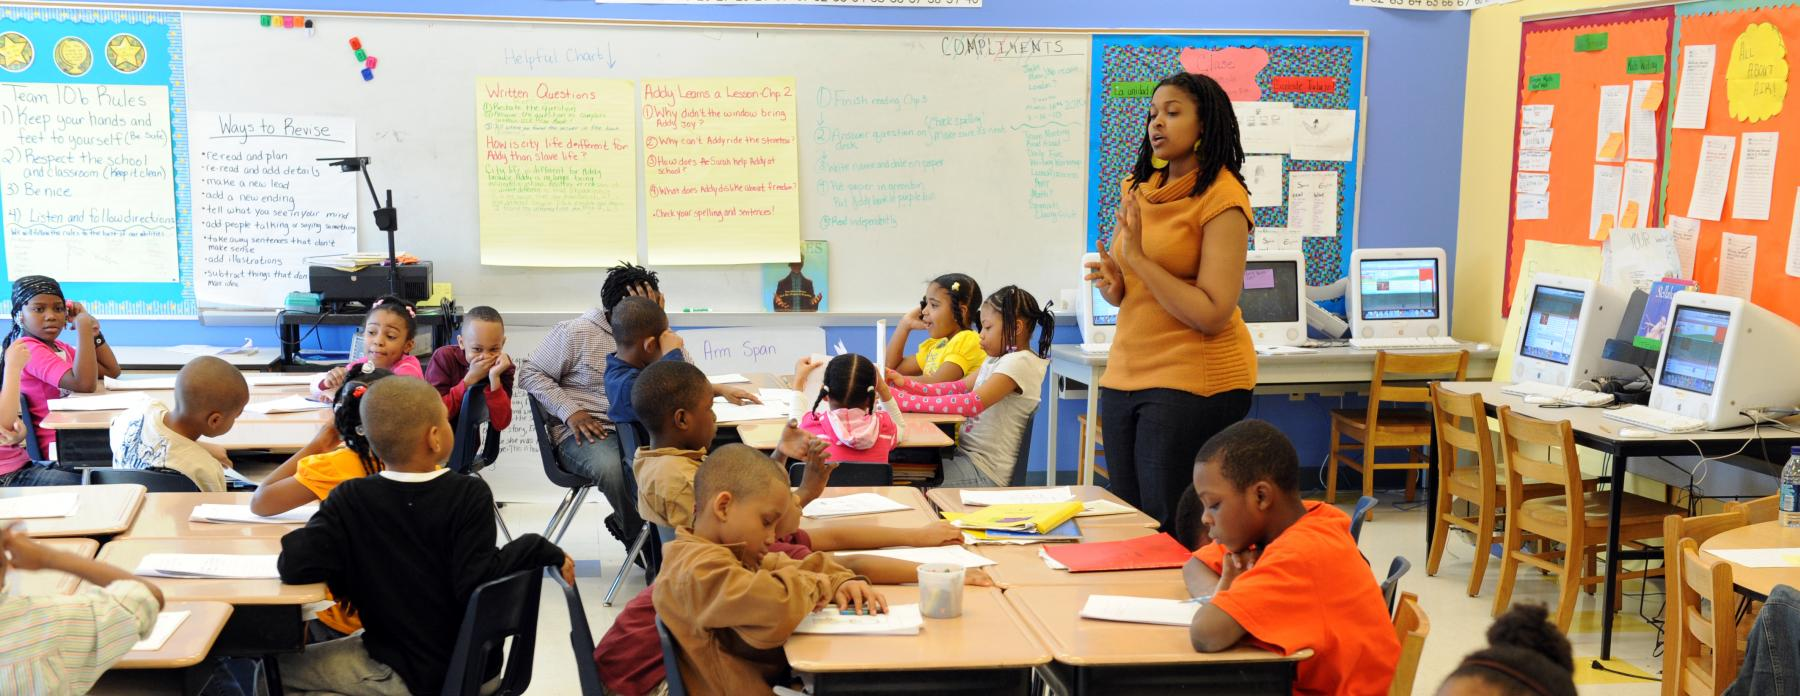 A teacher leads a class of elementary school students